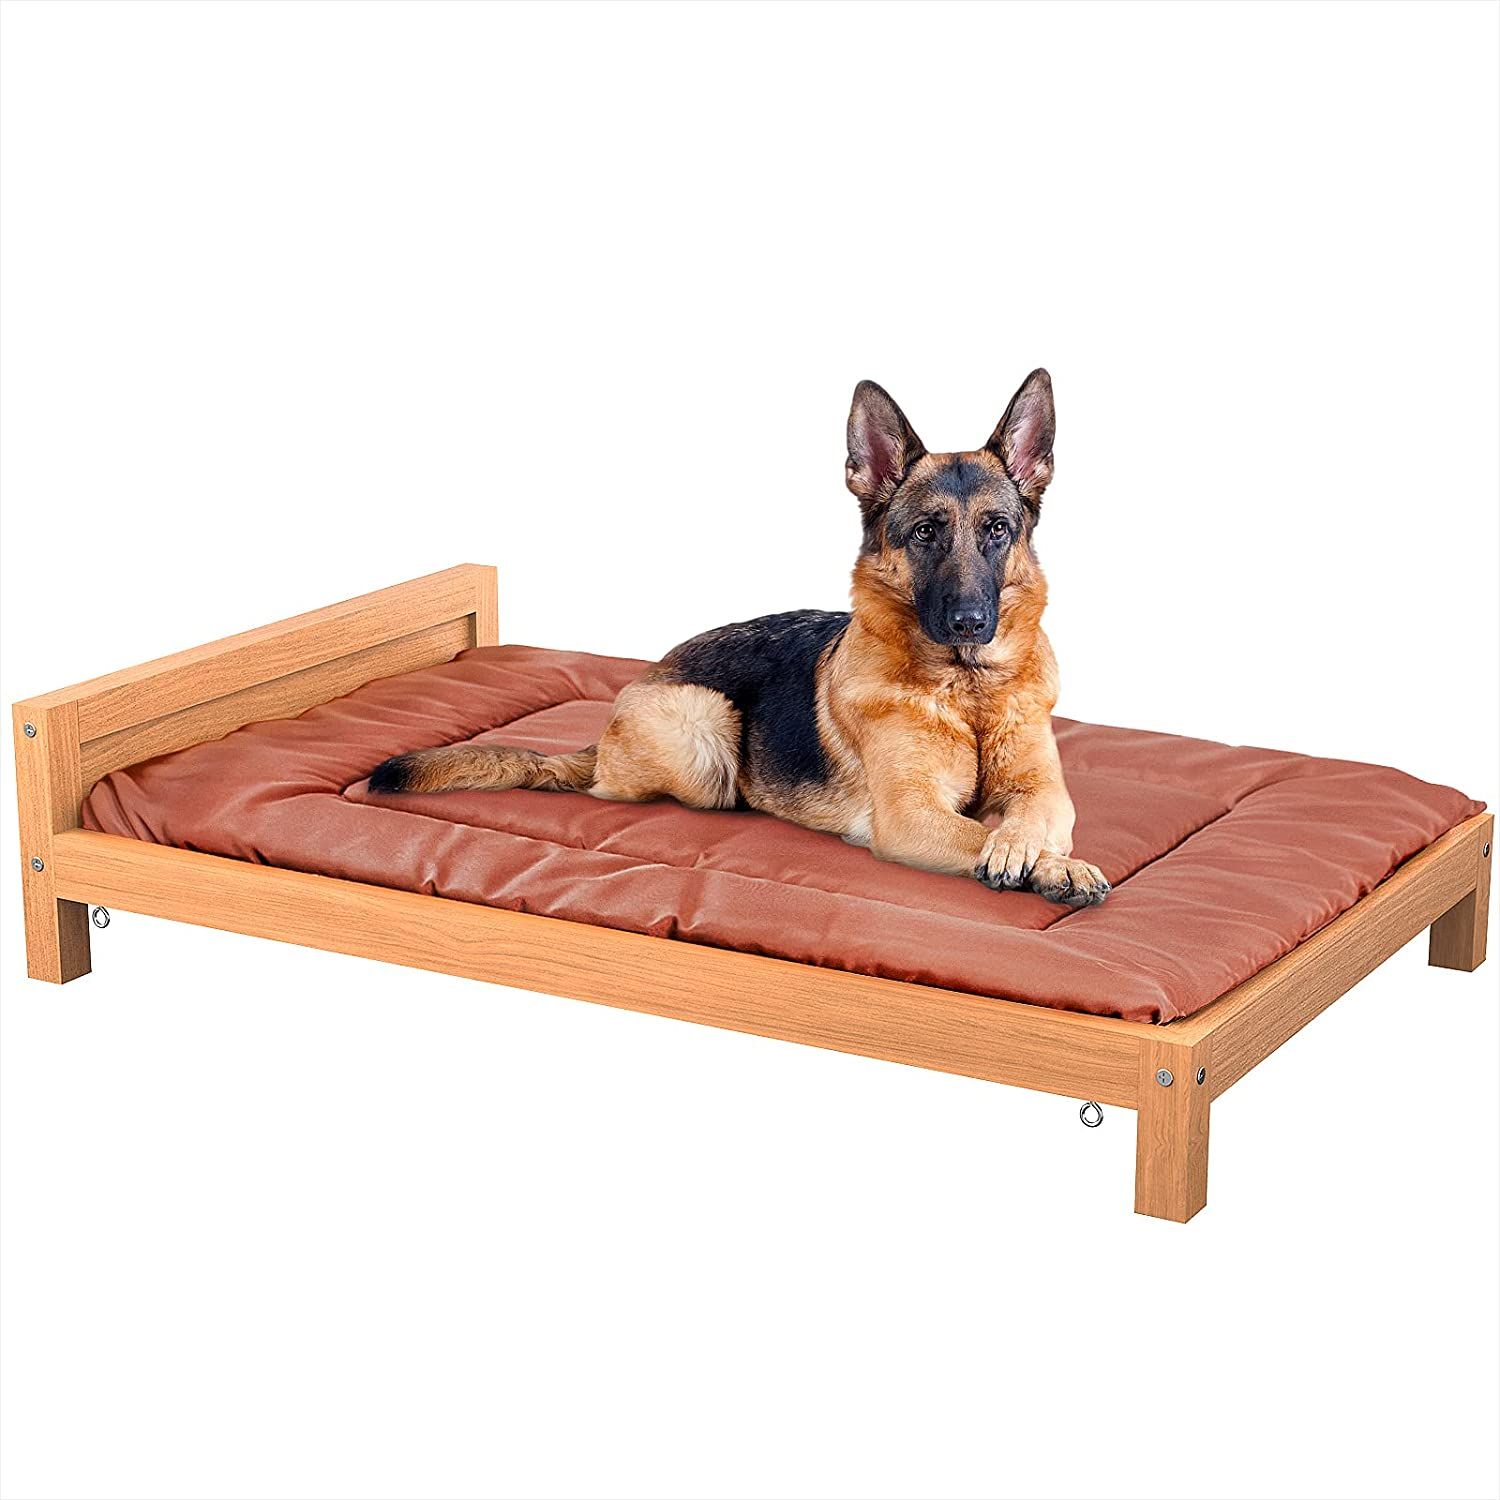 Homykic Dog Bed, Elevated Fir Wood Dog Bed Raised Pet Bed Furniture with Removable Washable Cushion for Large Medium Small Dogs, Cat, L/M/S Size, Brown